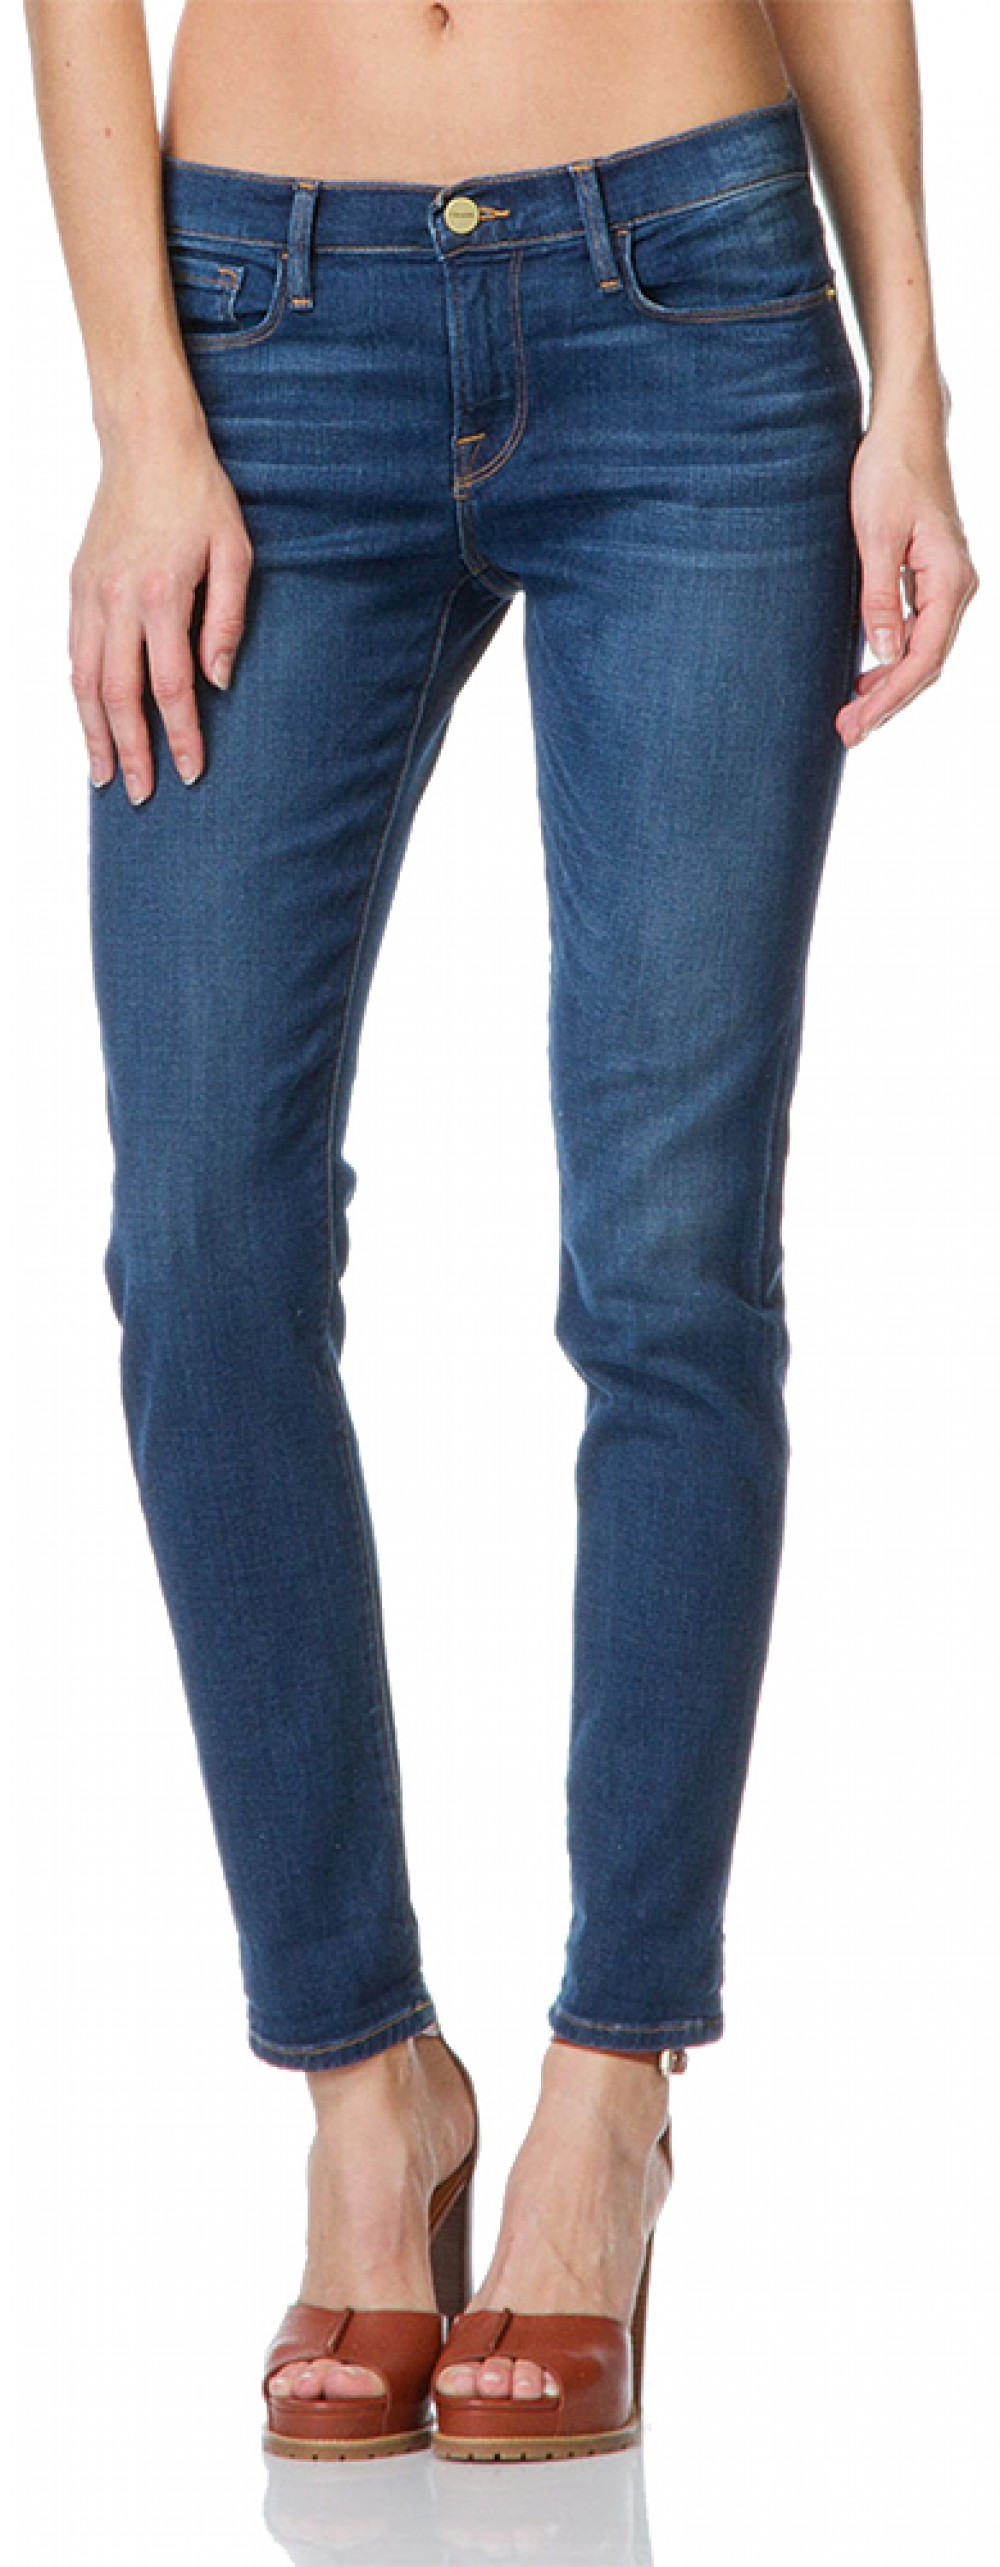 Magnificent Frame Denim Le Garcon | Engaging Frame Denim Le Skinny